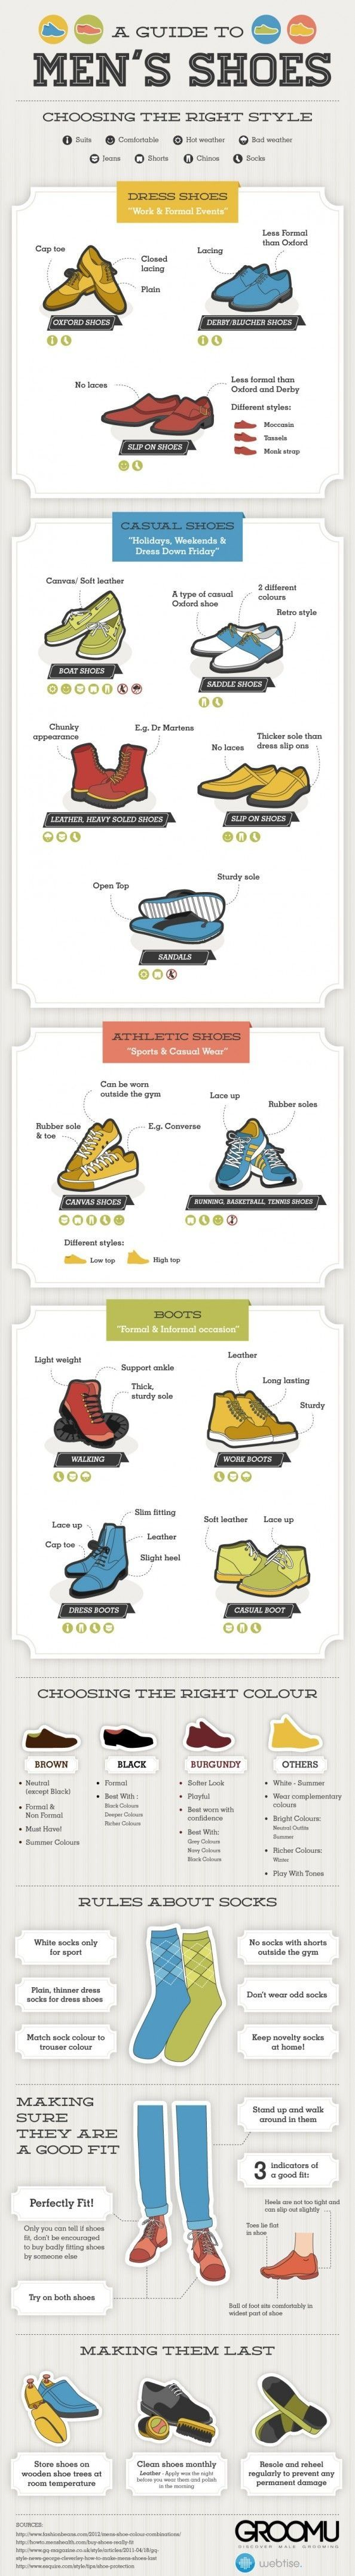 A men's guide to choosing right type of shoes #men #guide #howto #fashion #style #shoes #affiliate